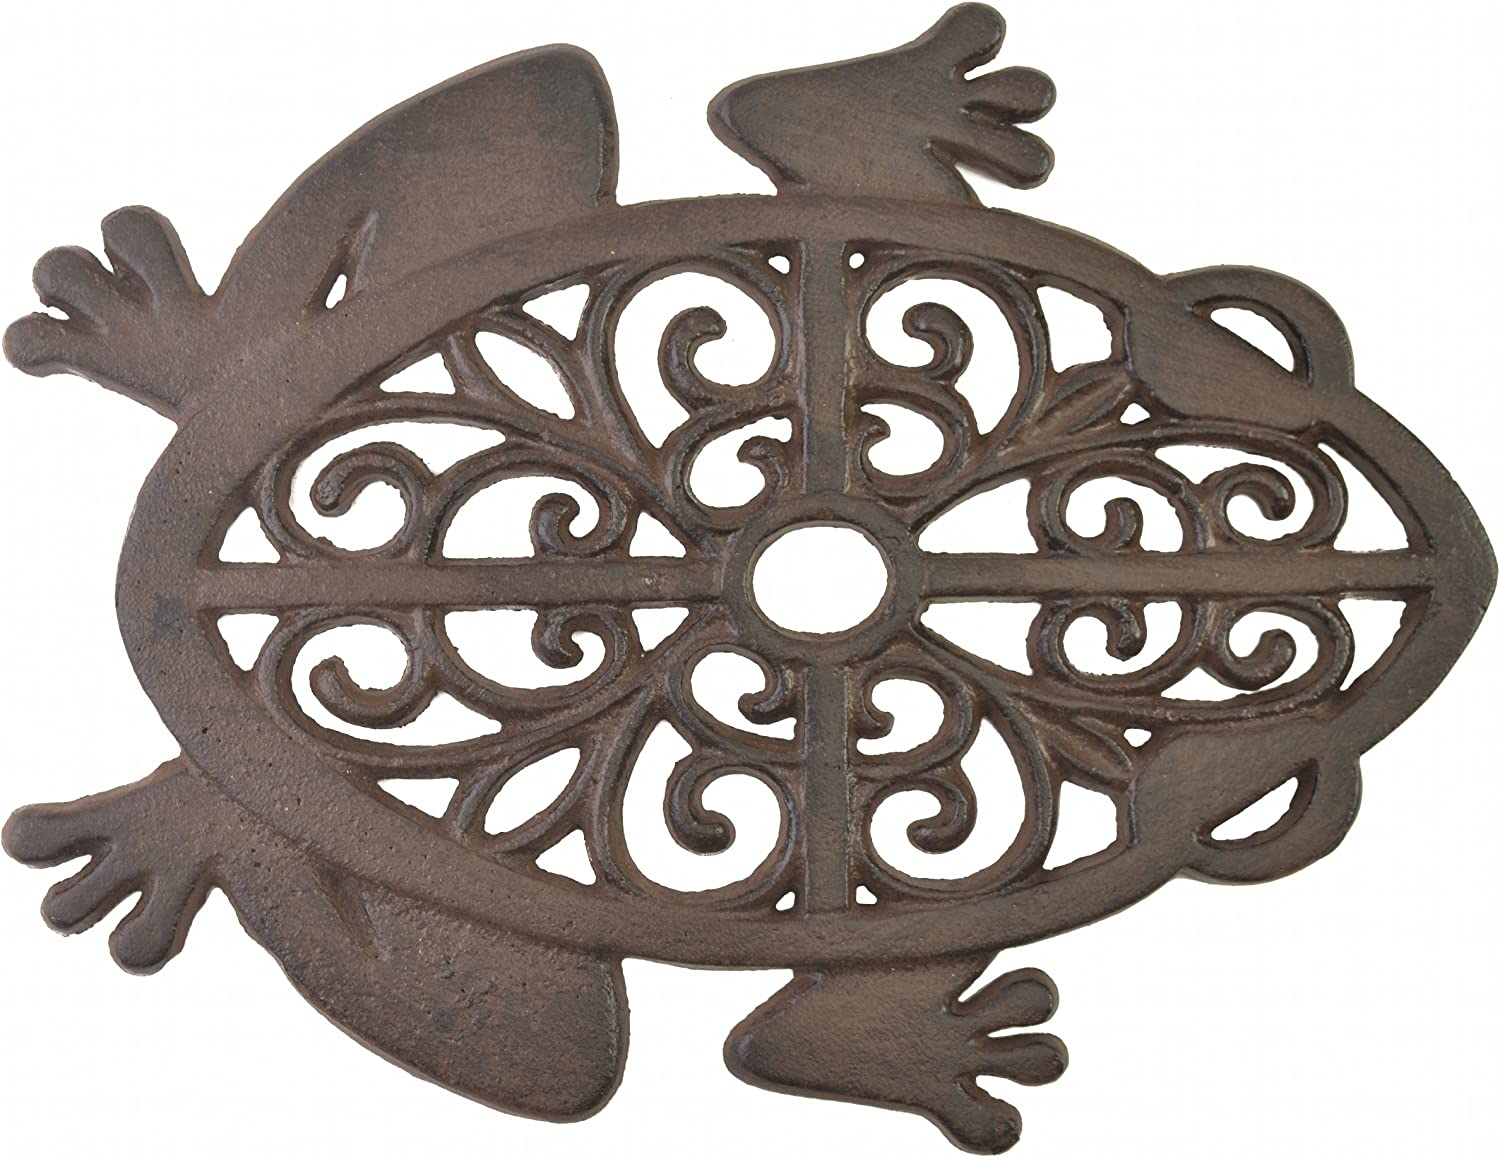 Import Wholesales Decorative Stepping Stone Cutout Frog Cast Iron Yard & Garden Flagstone Rust Brown